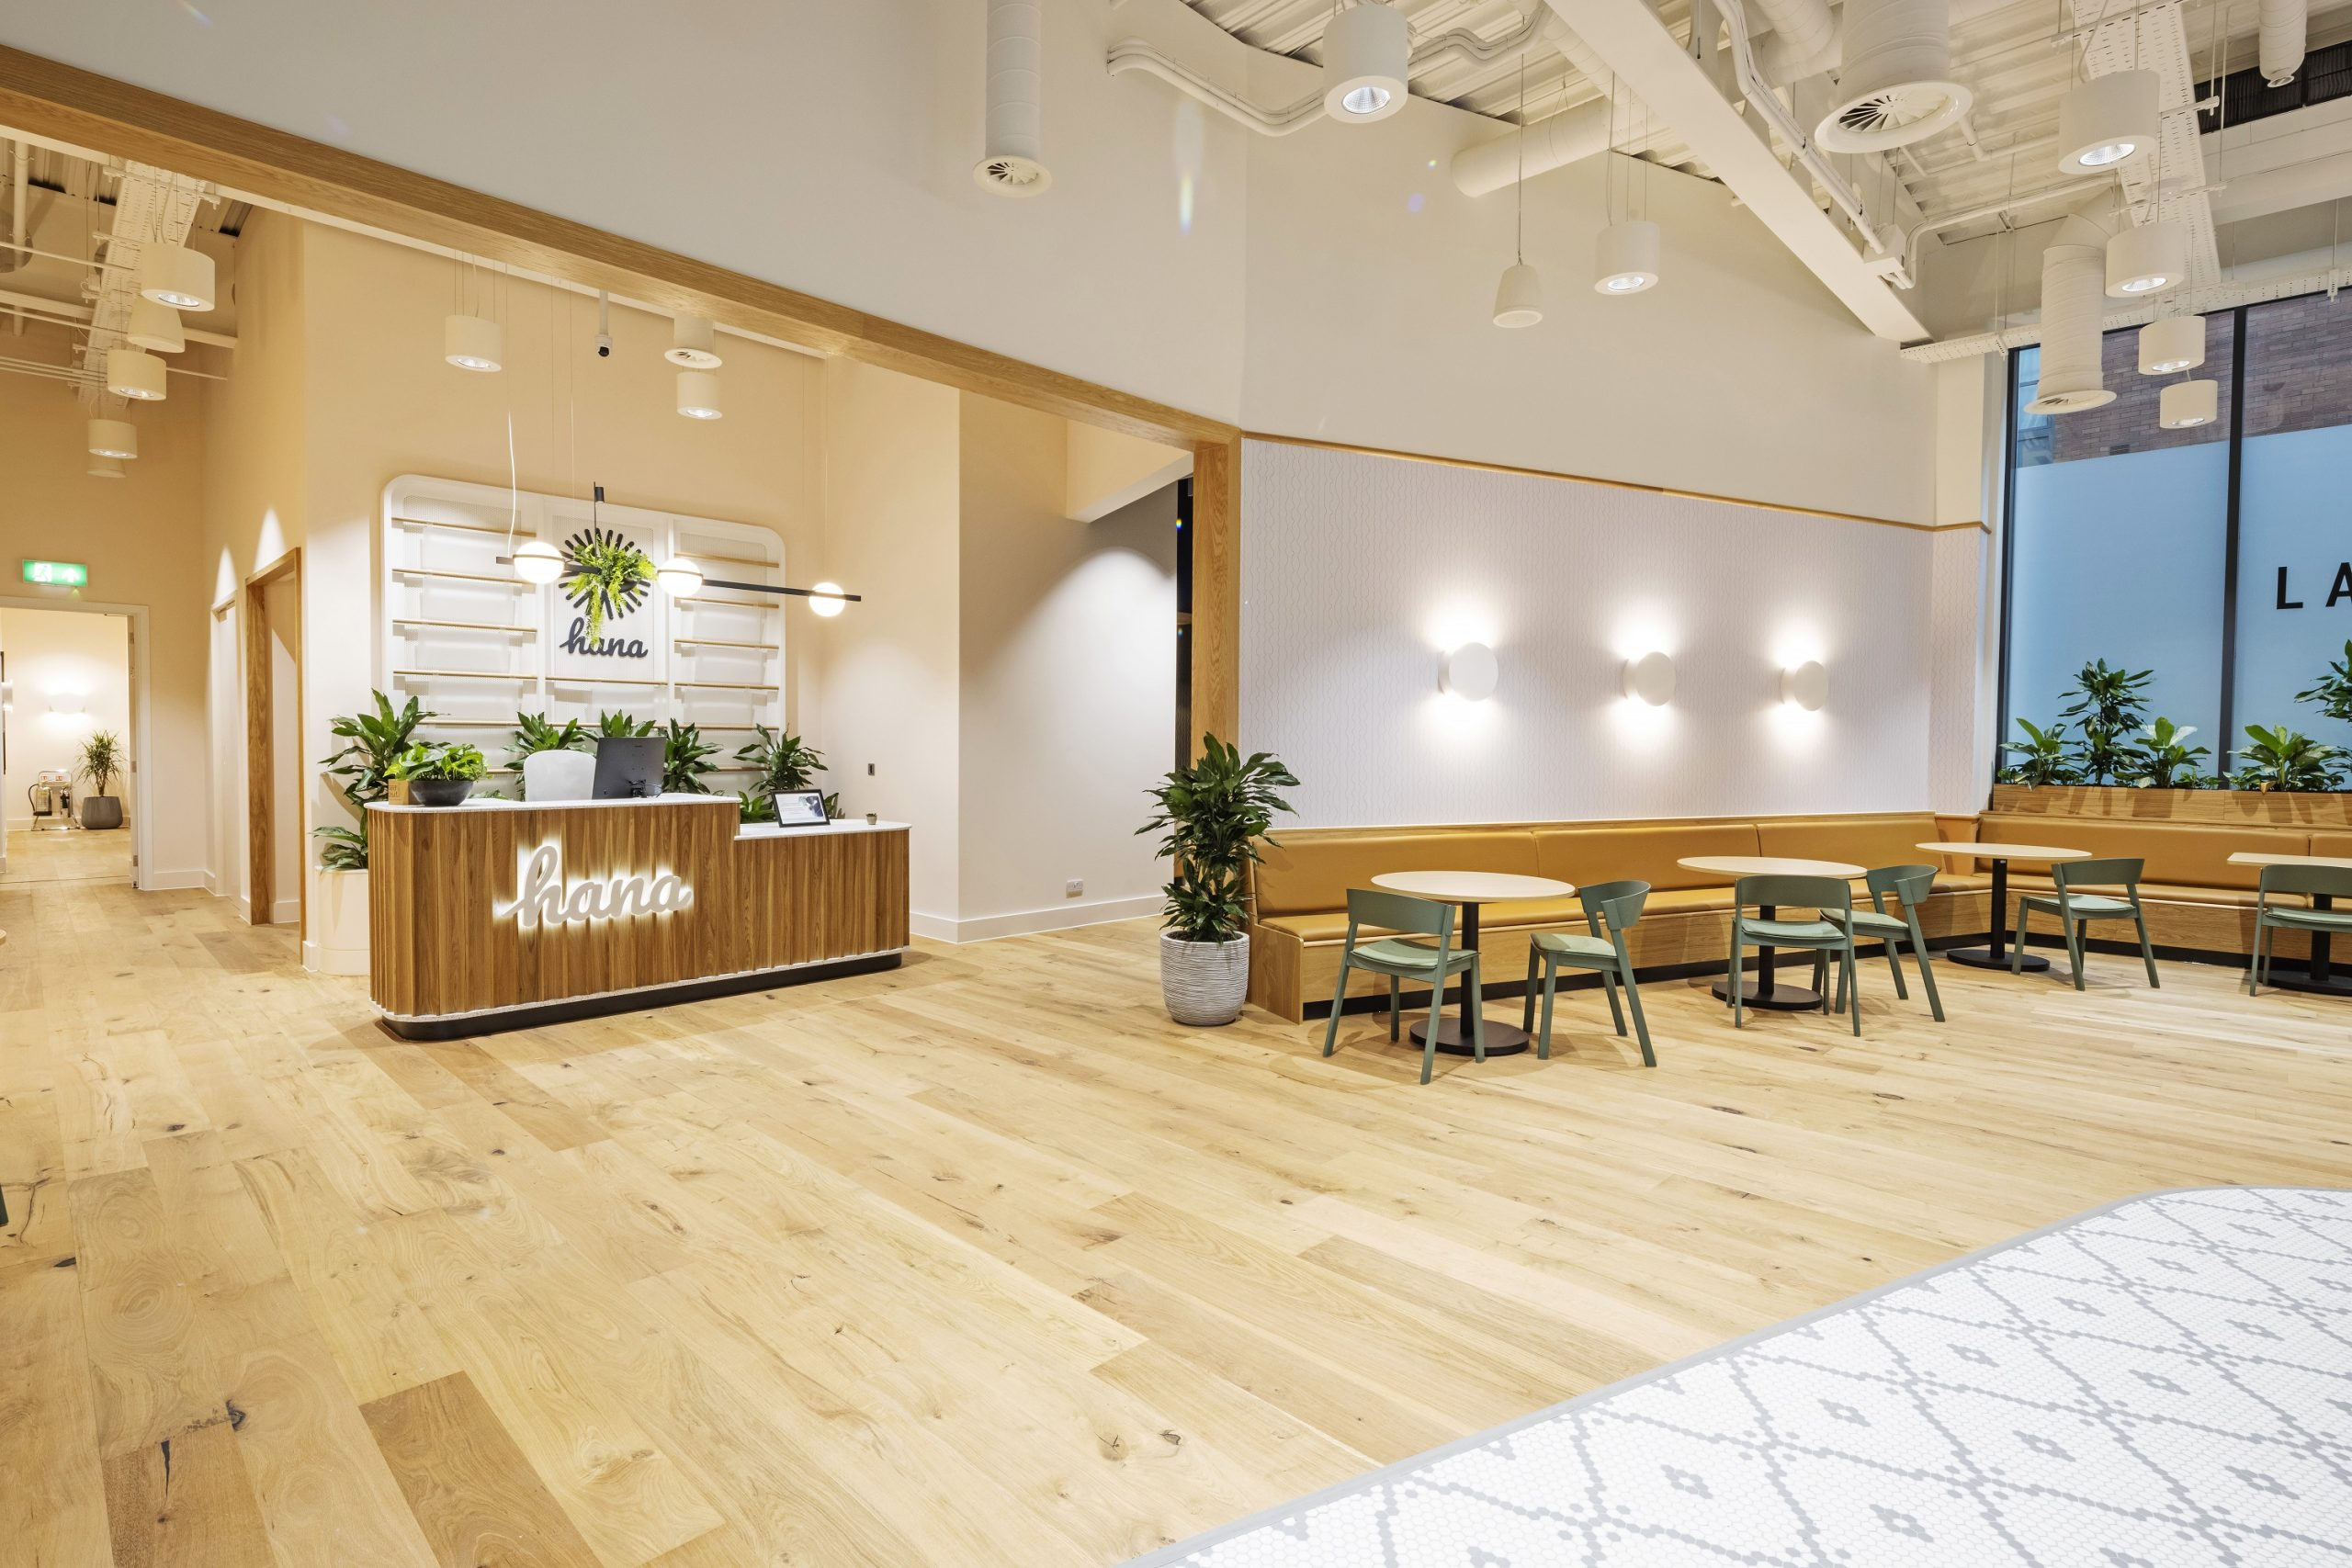 Hana by Industrious St. Peter's Square Opens its Doors at Landmark